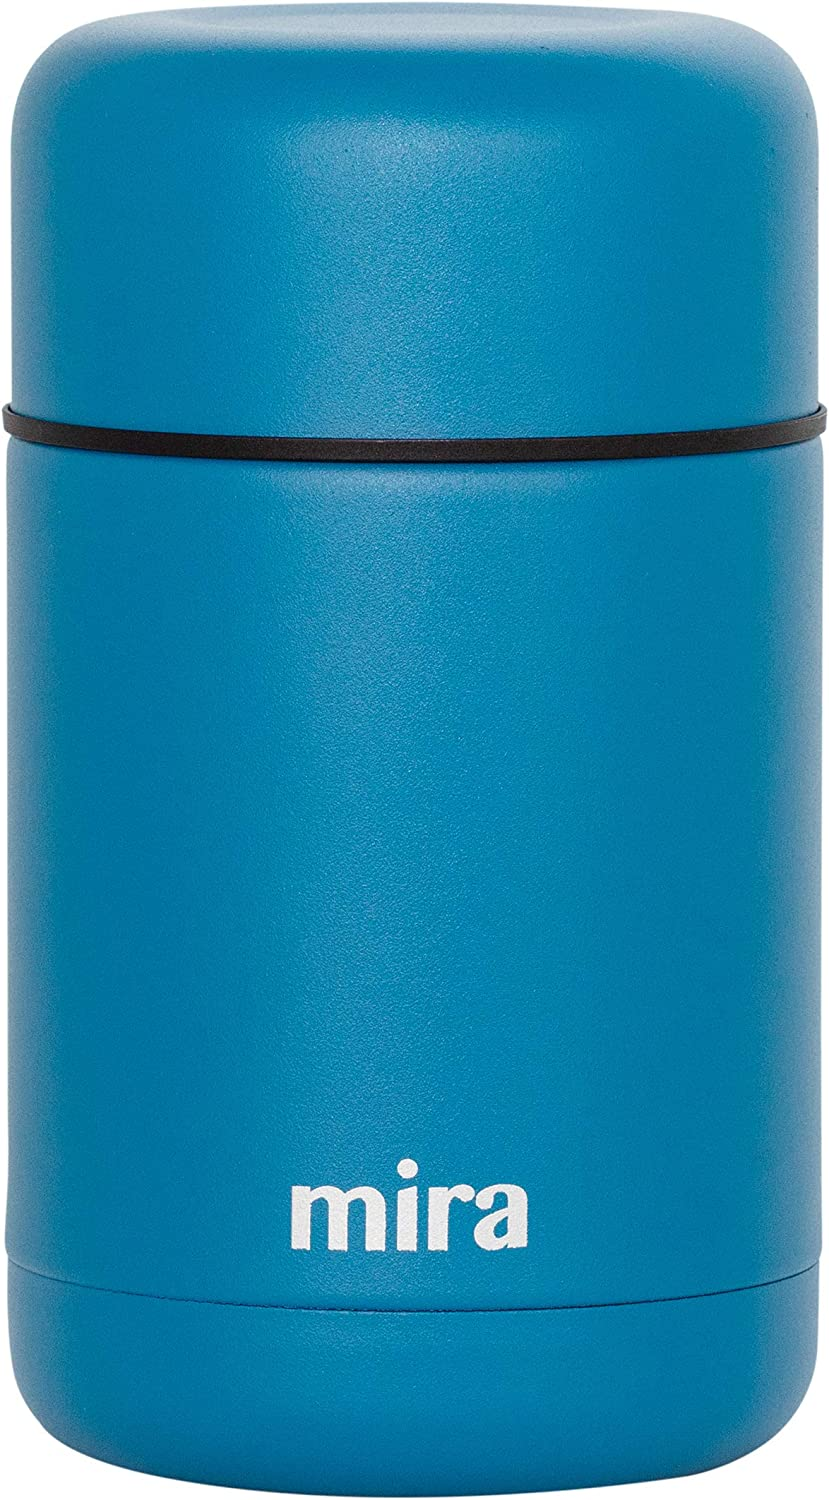 MIRA 25 oz Lunch, Food Jar, Vacuum Insulated Stainless Steel Lunch Thermos, Hawaiian Blue